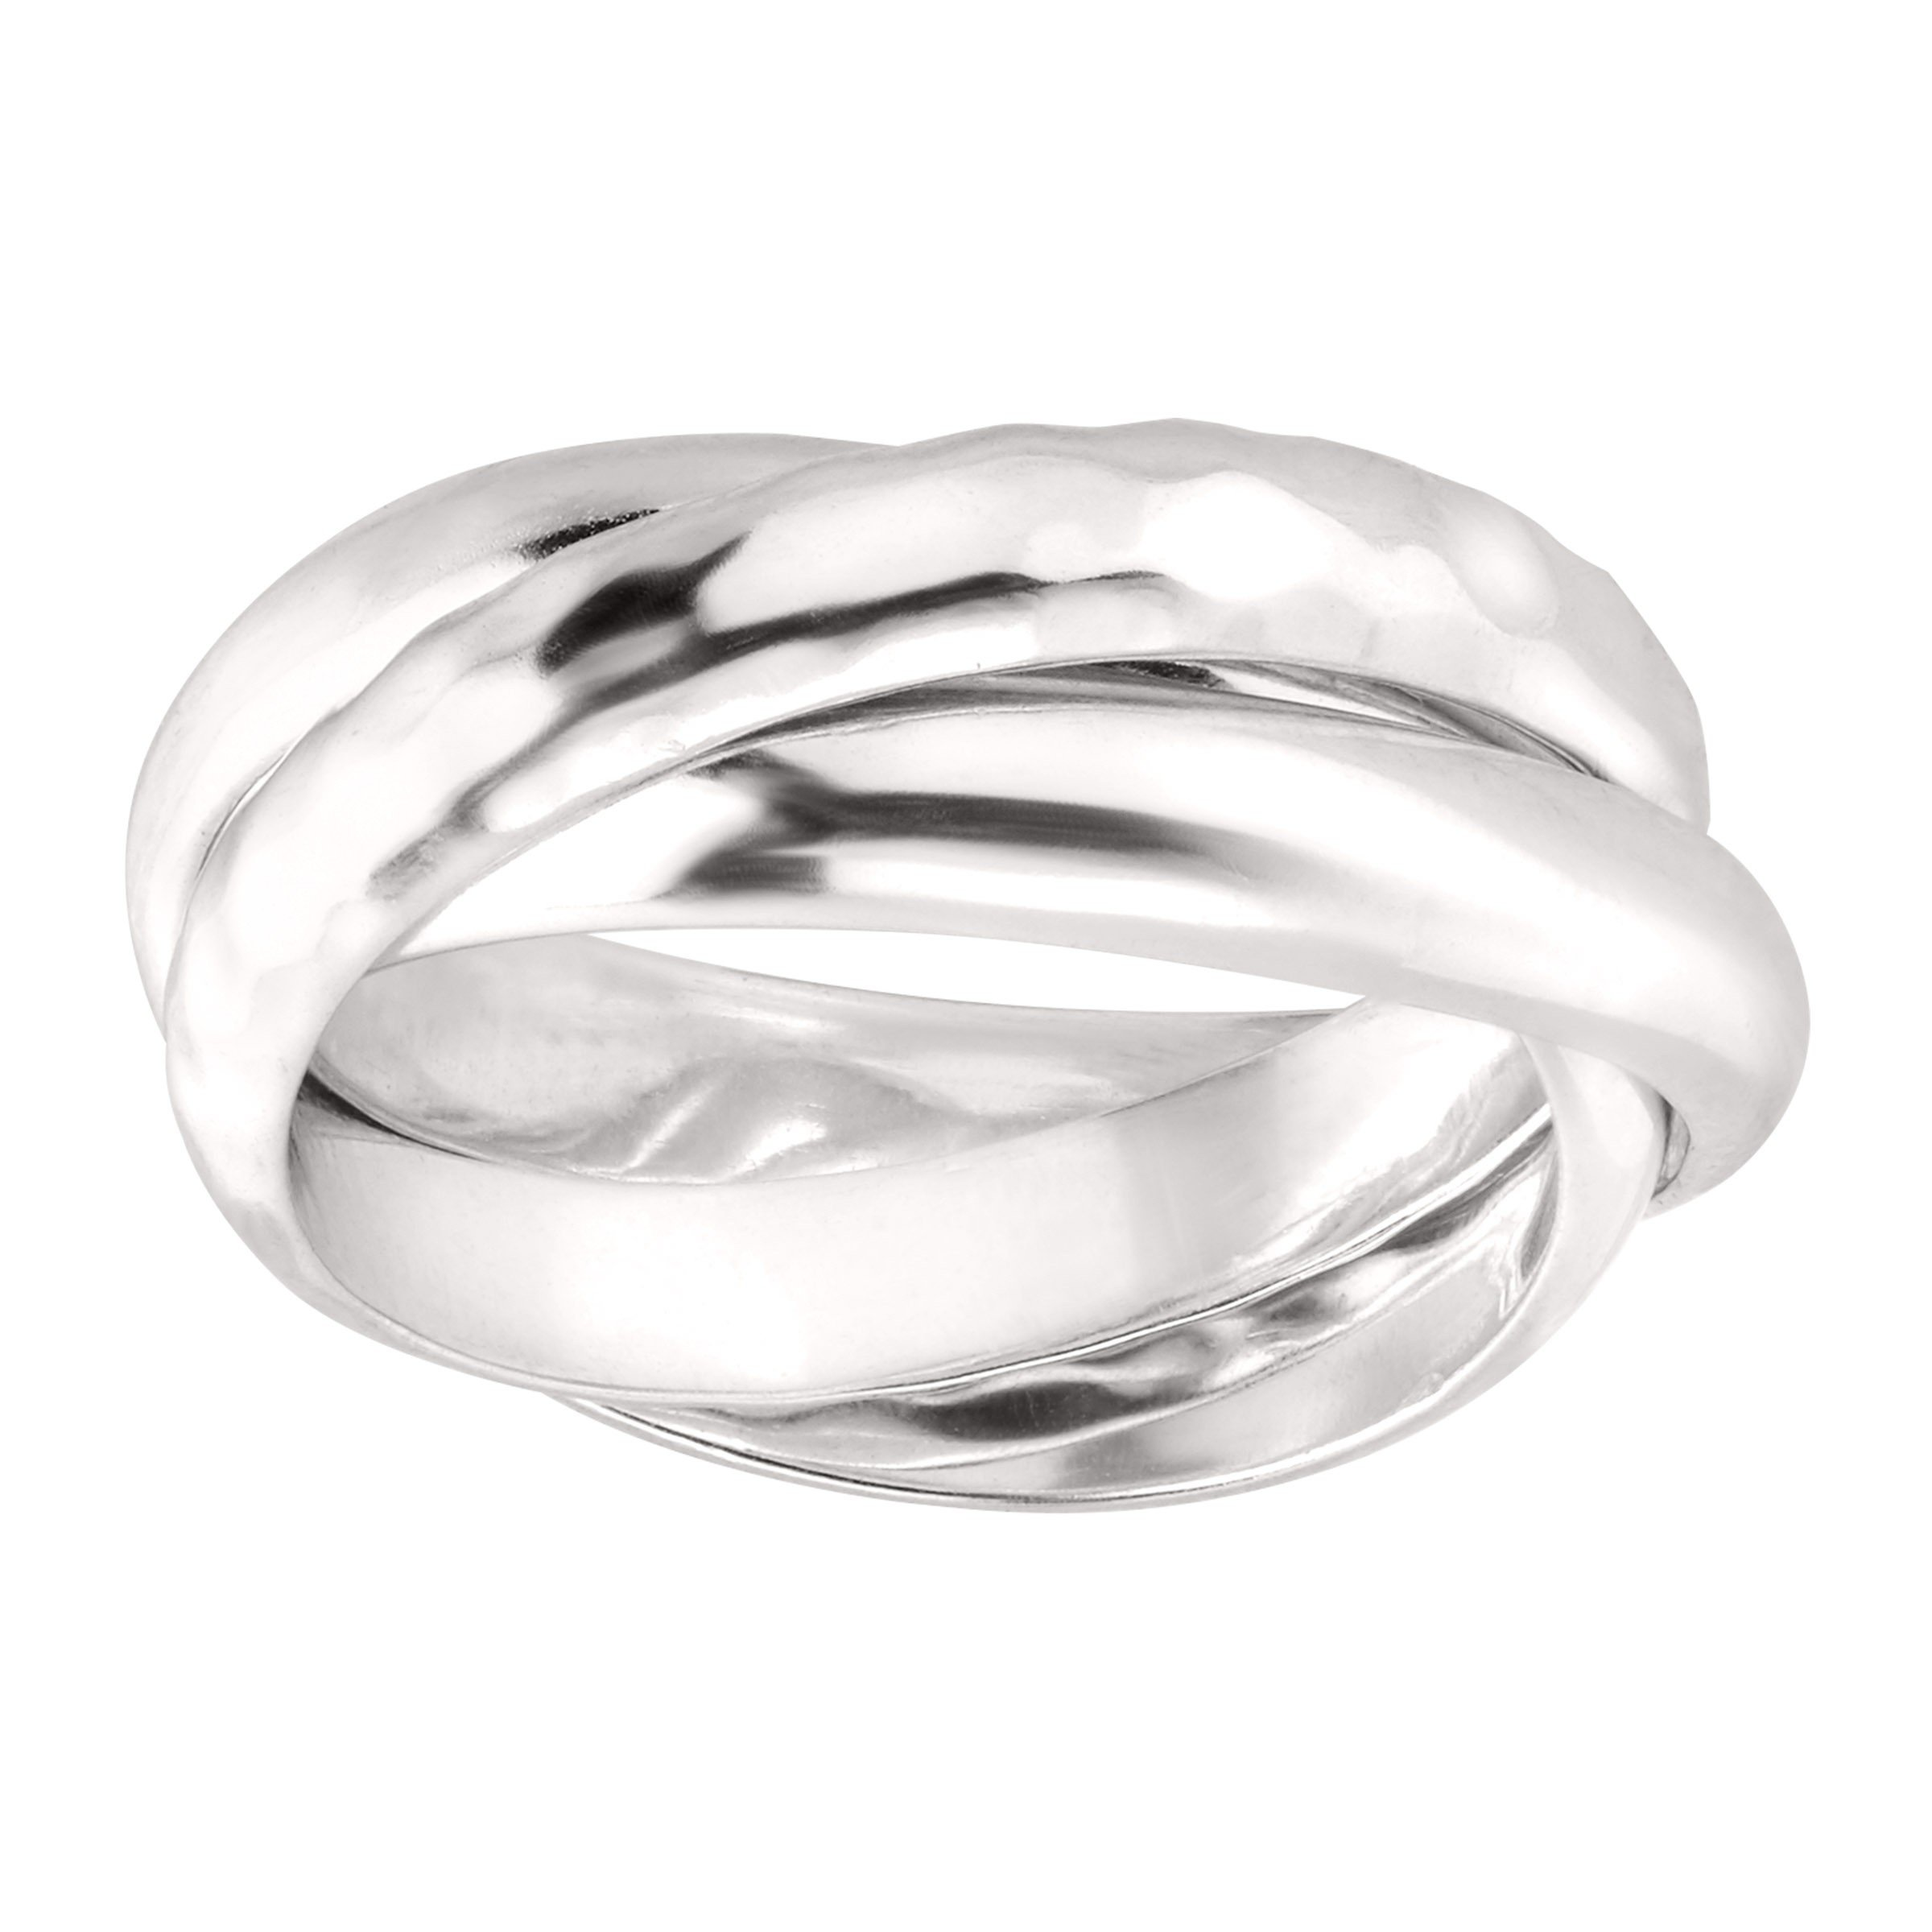 Silpada 'Showtime' Sterling Silver Ring, Size 8